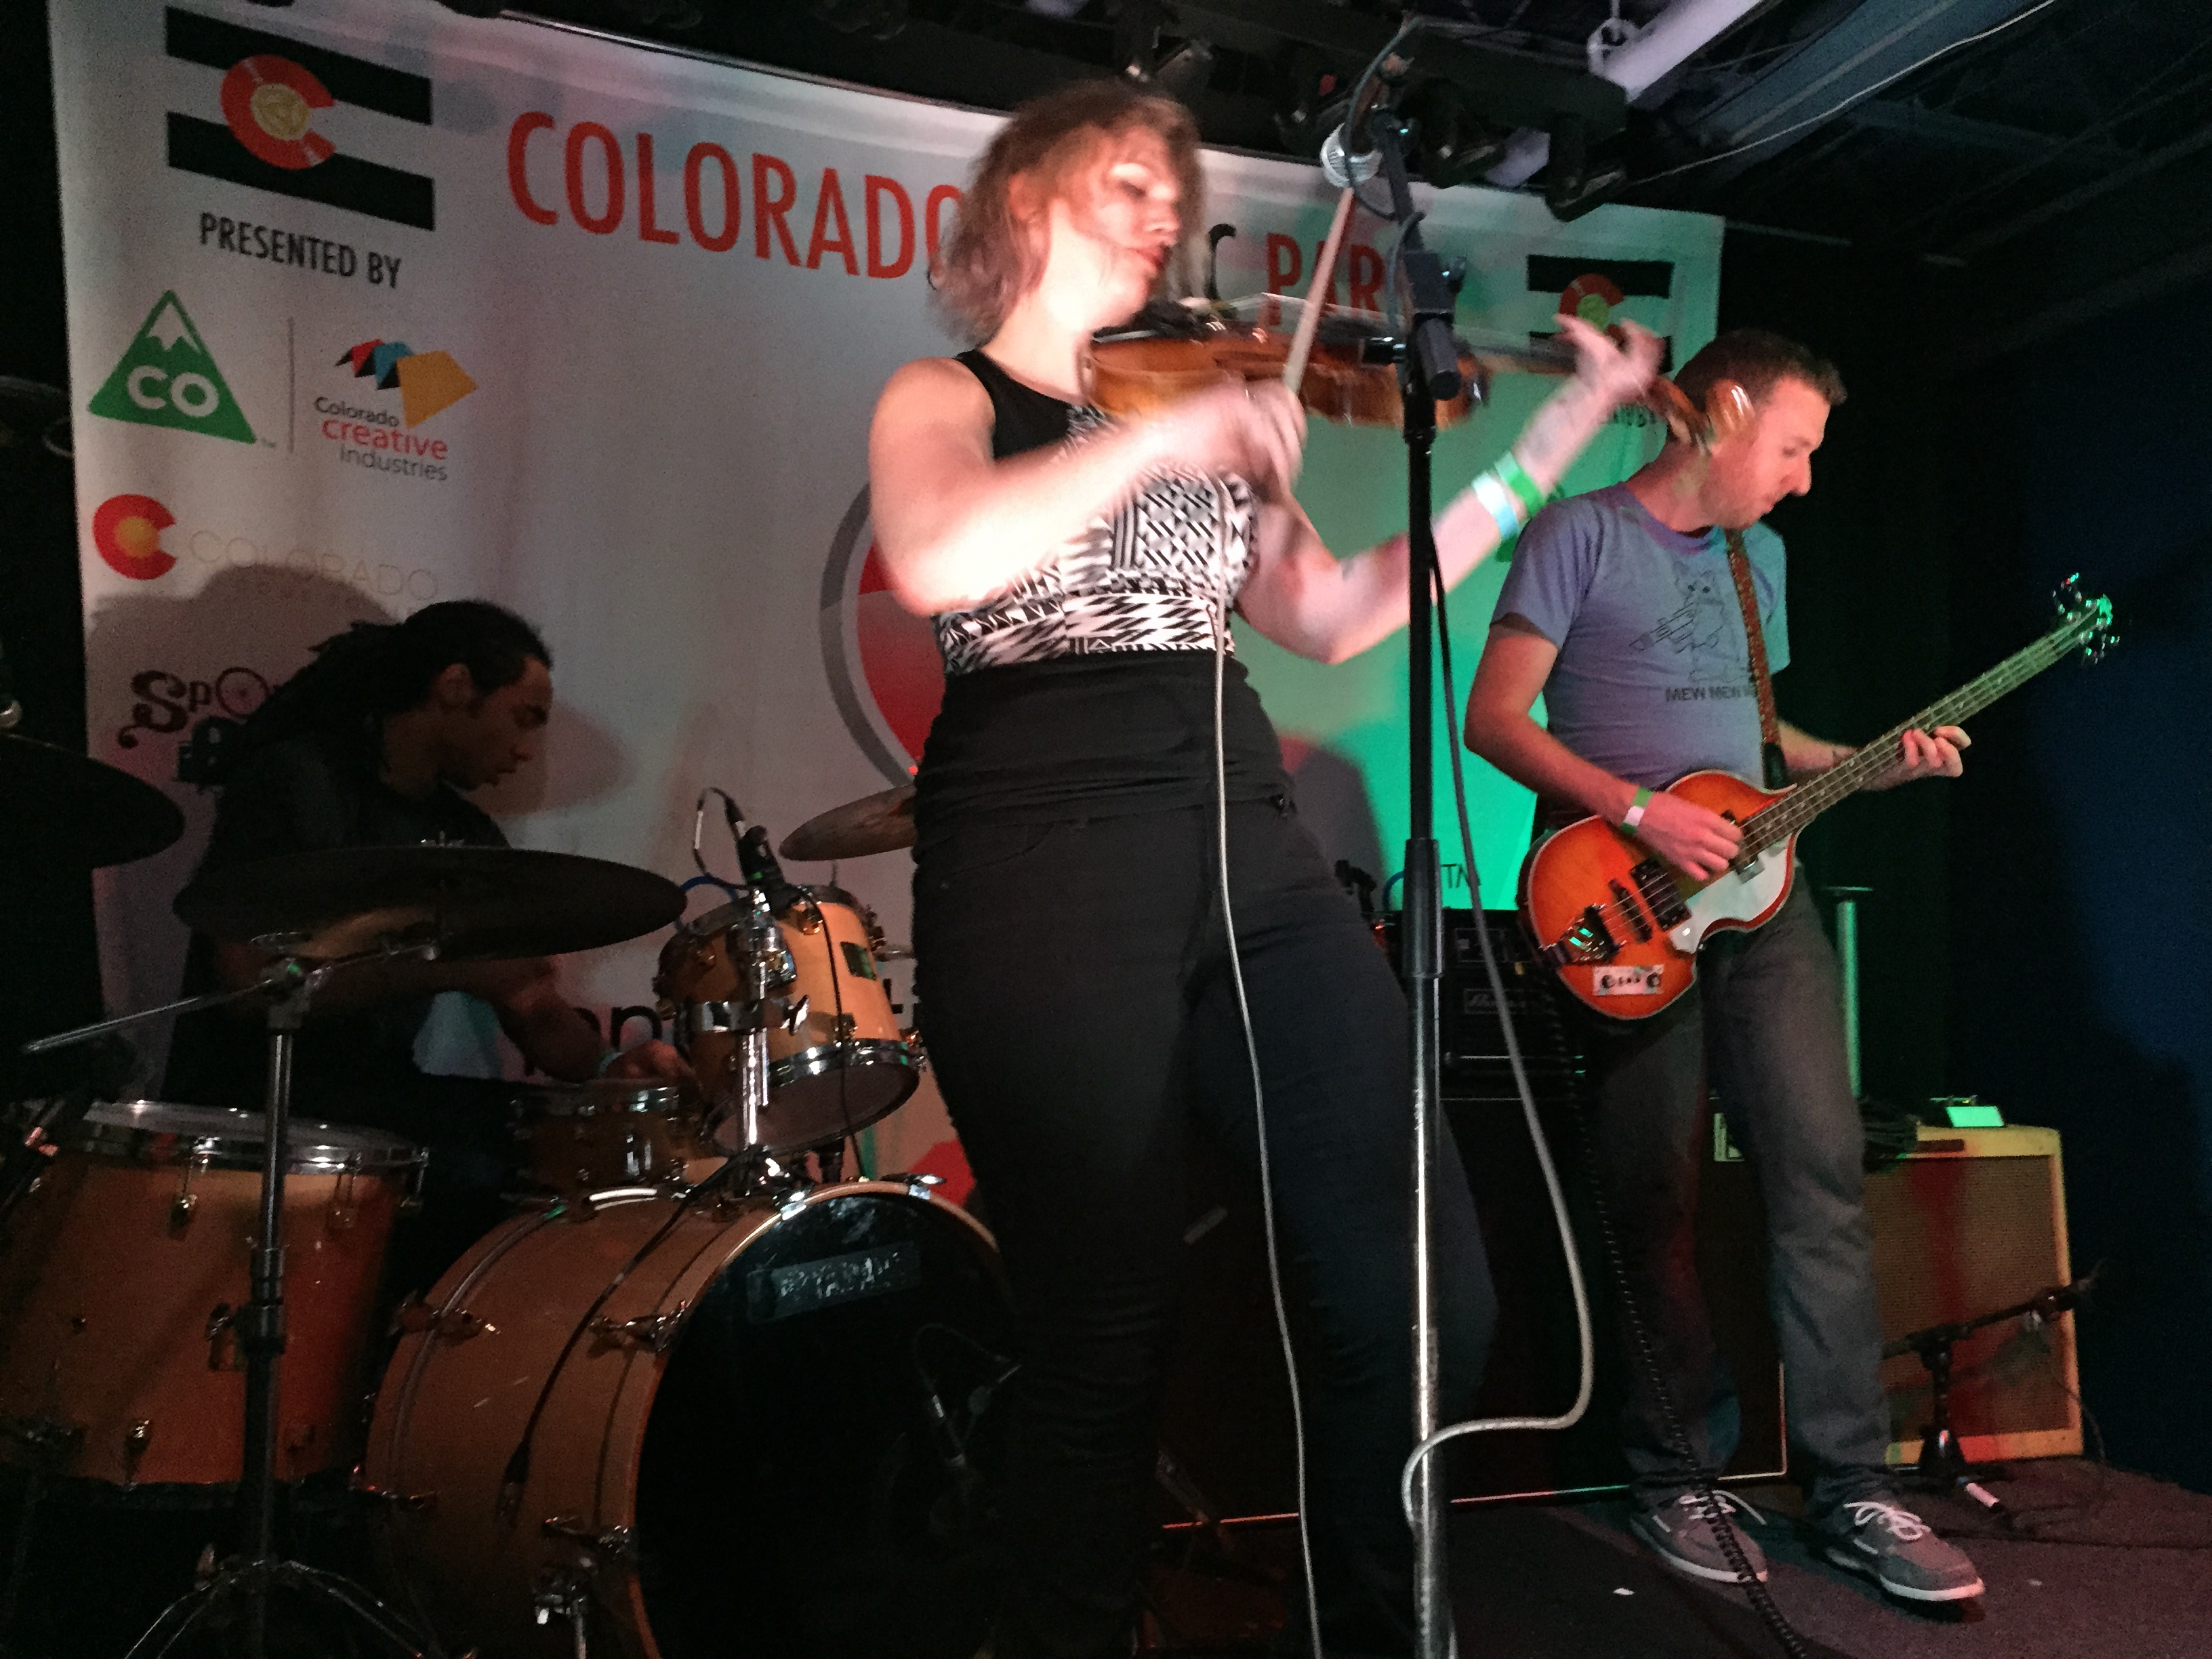 Alana Rolfe plays with Fort Collins band Stella Luce at the Colorado Music Party during SXSW 2015 in Austin, Texas. Photo by Quentin Young